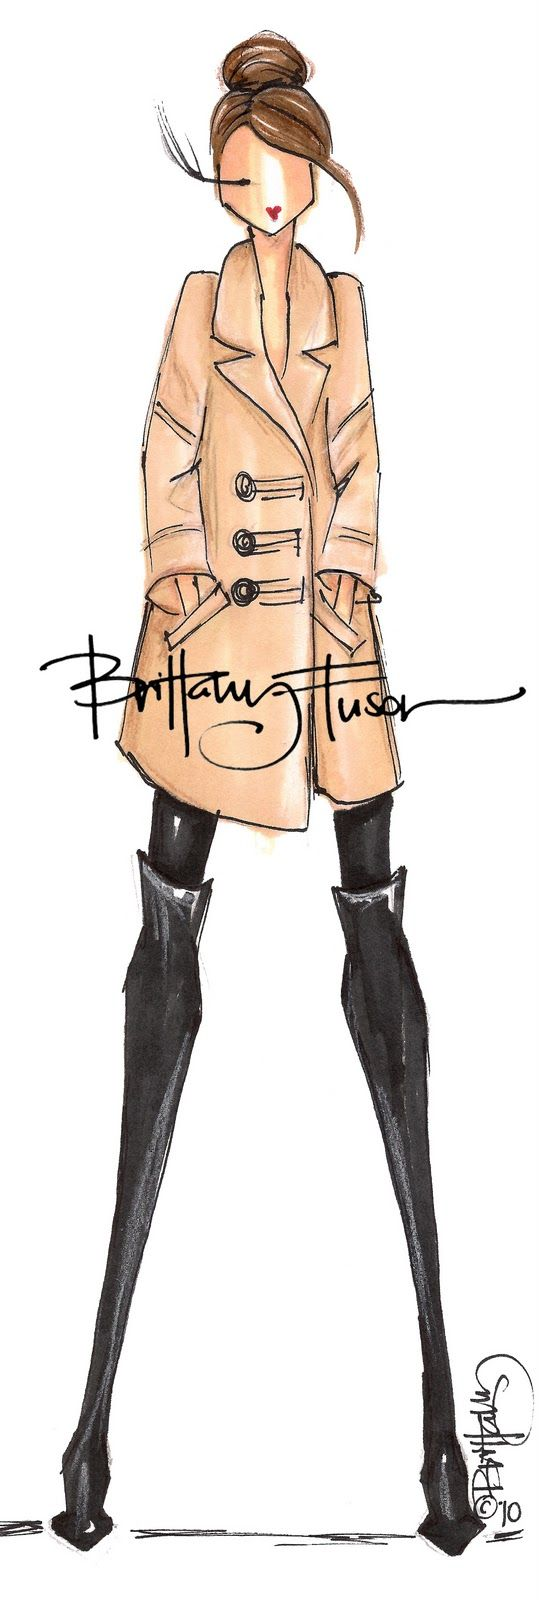 brittany fuson| Be Inspirational❥|Mz. Manerz: Being well dressed is a beautiful form of confidence, happiness & politeness